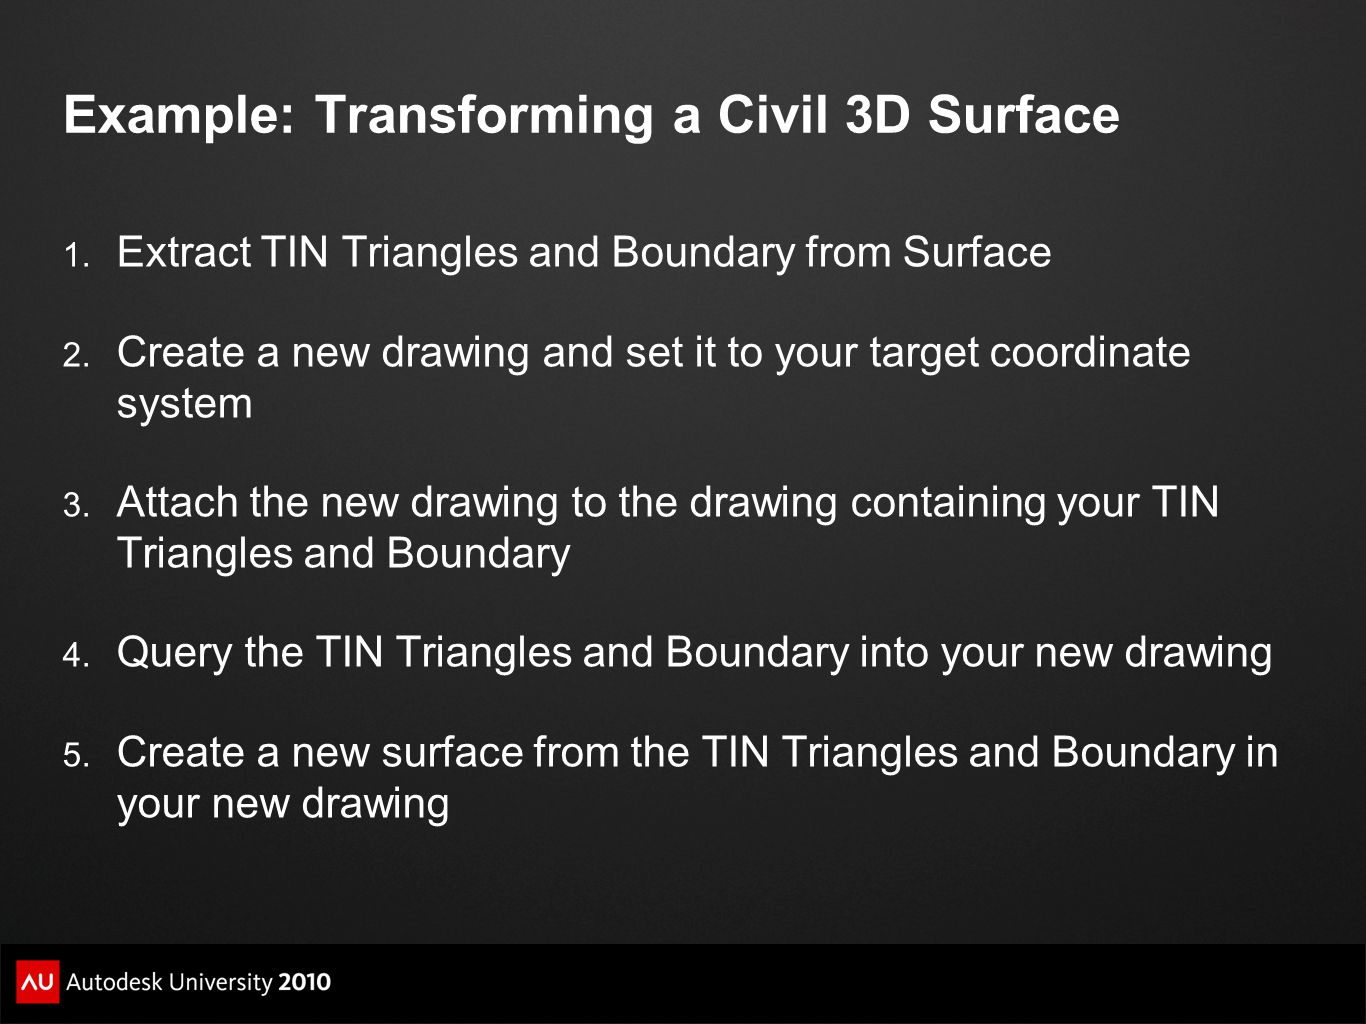 Example: Transforming a Civil 3D Surface